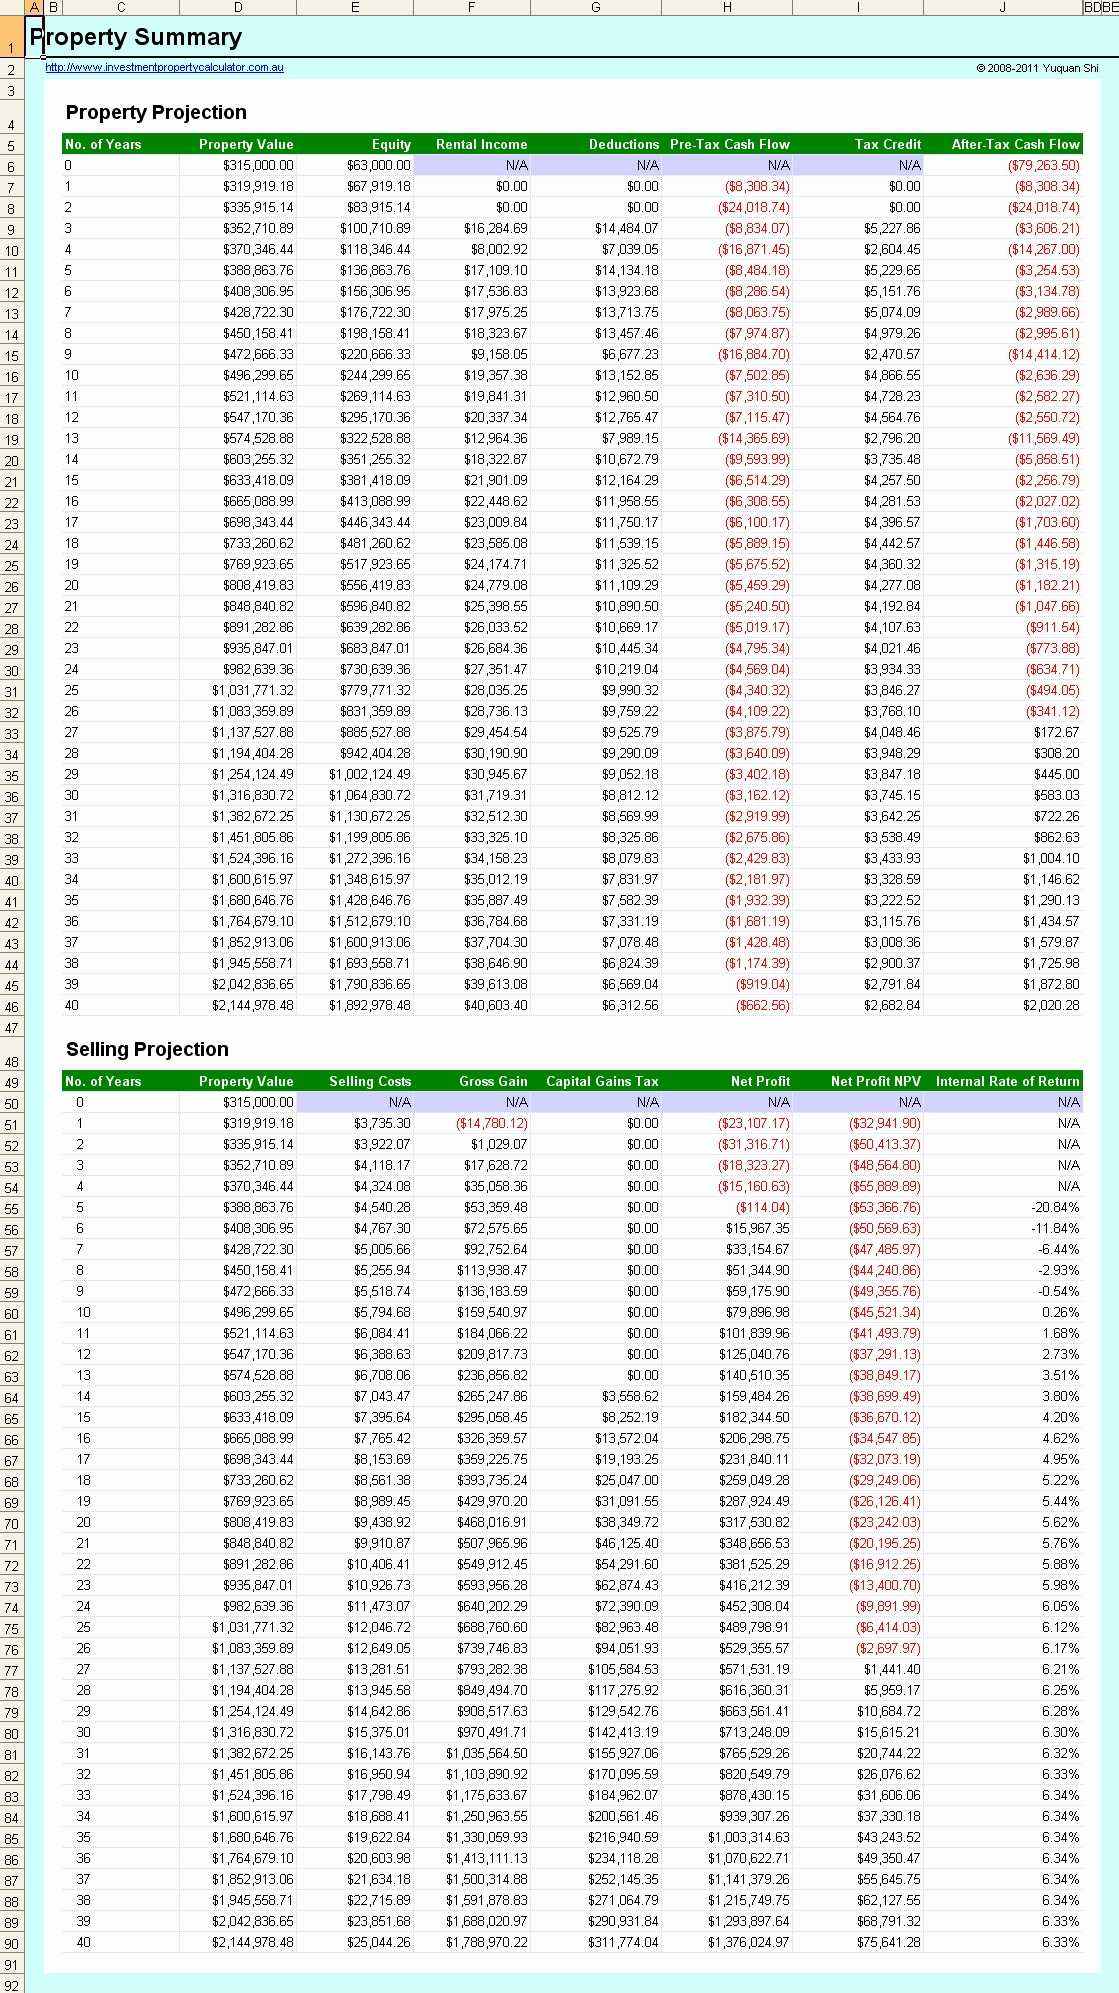 Ip Address Planning Spreadsheet With Regard To Ip Address Planning Spreadsheet Together With Investment Property Ip Address Planning Spreadsheet Spreadsheet Downloa Spreadsheet Downloa Ip Address Planning Spreadsheet